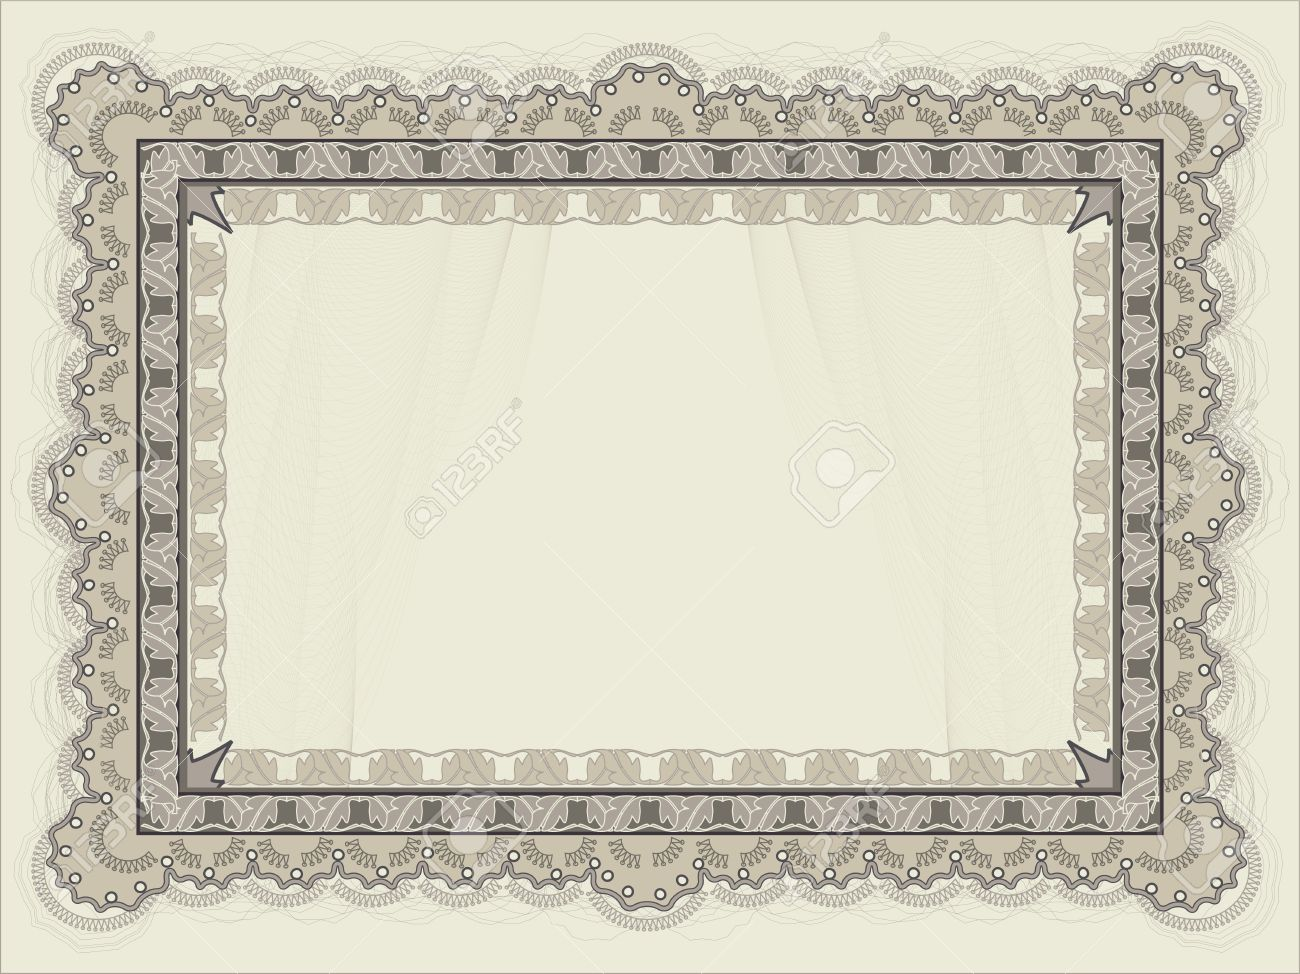 Blank Horizontal Certificate Template Stock Vector   21802134